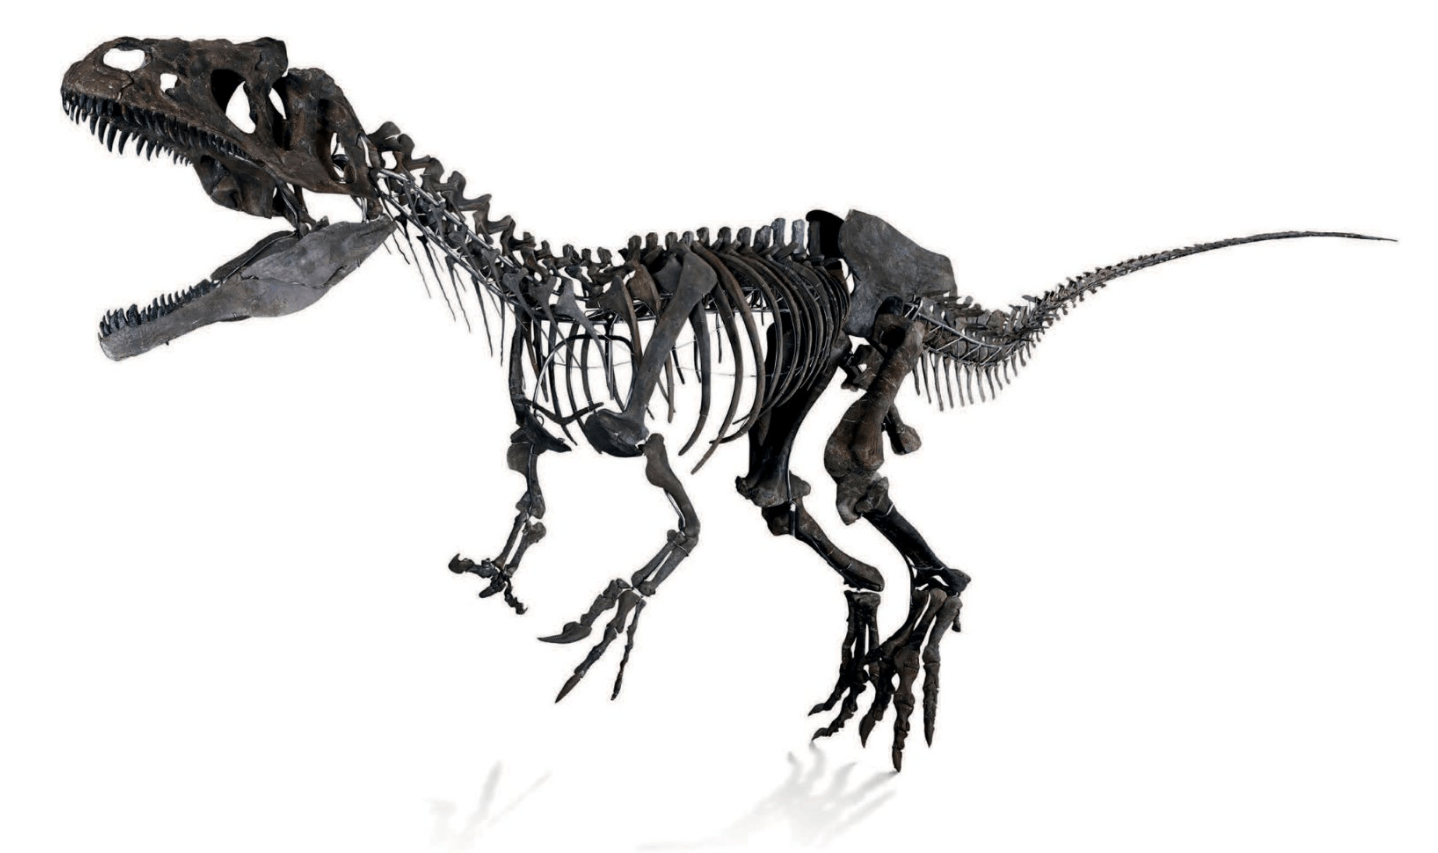 unidentified dinosaur sold at auction